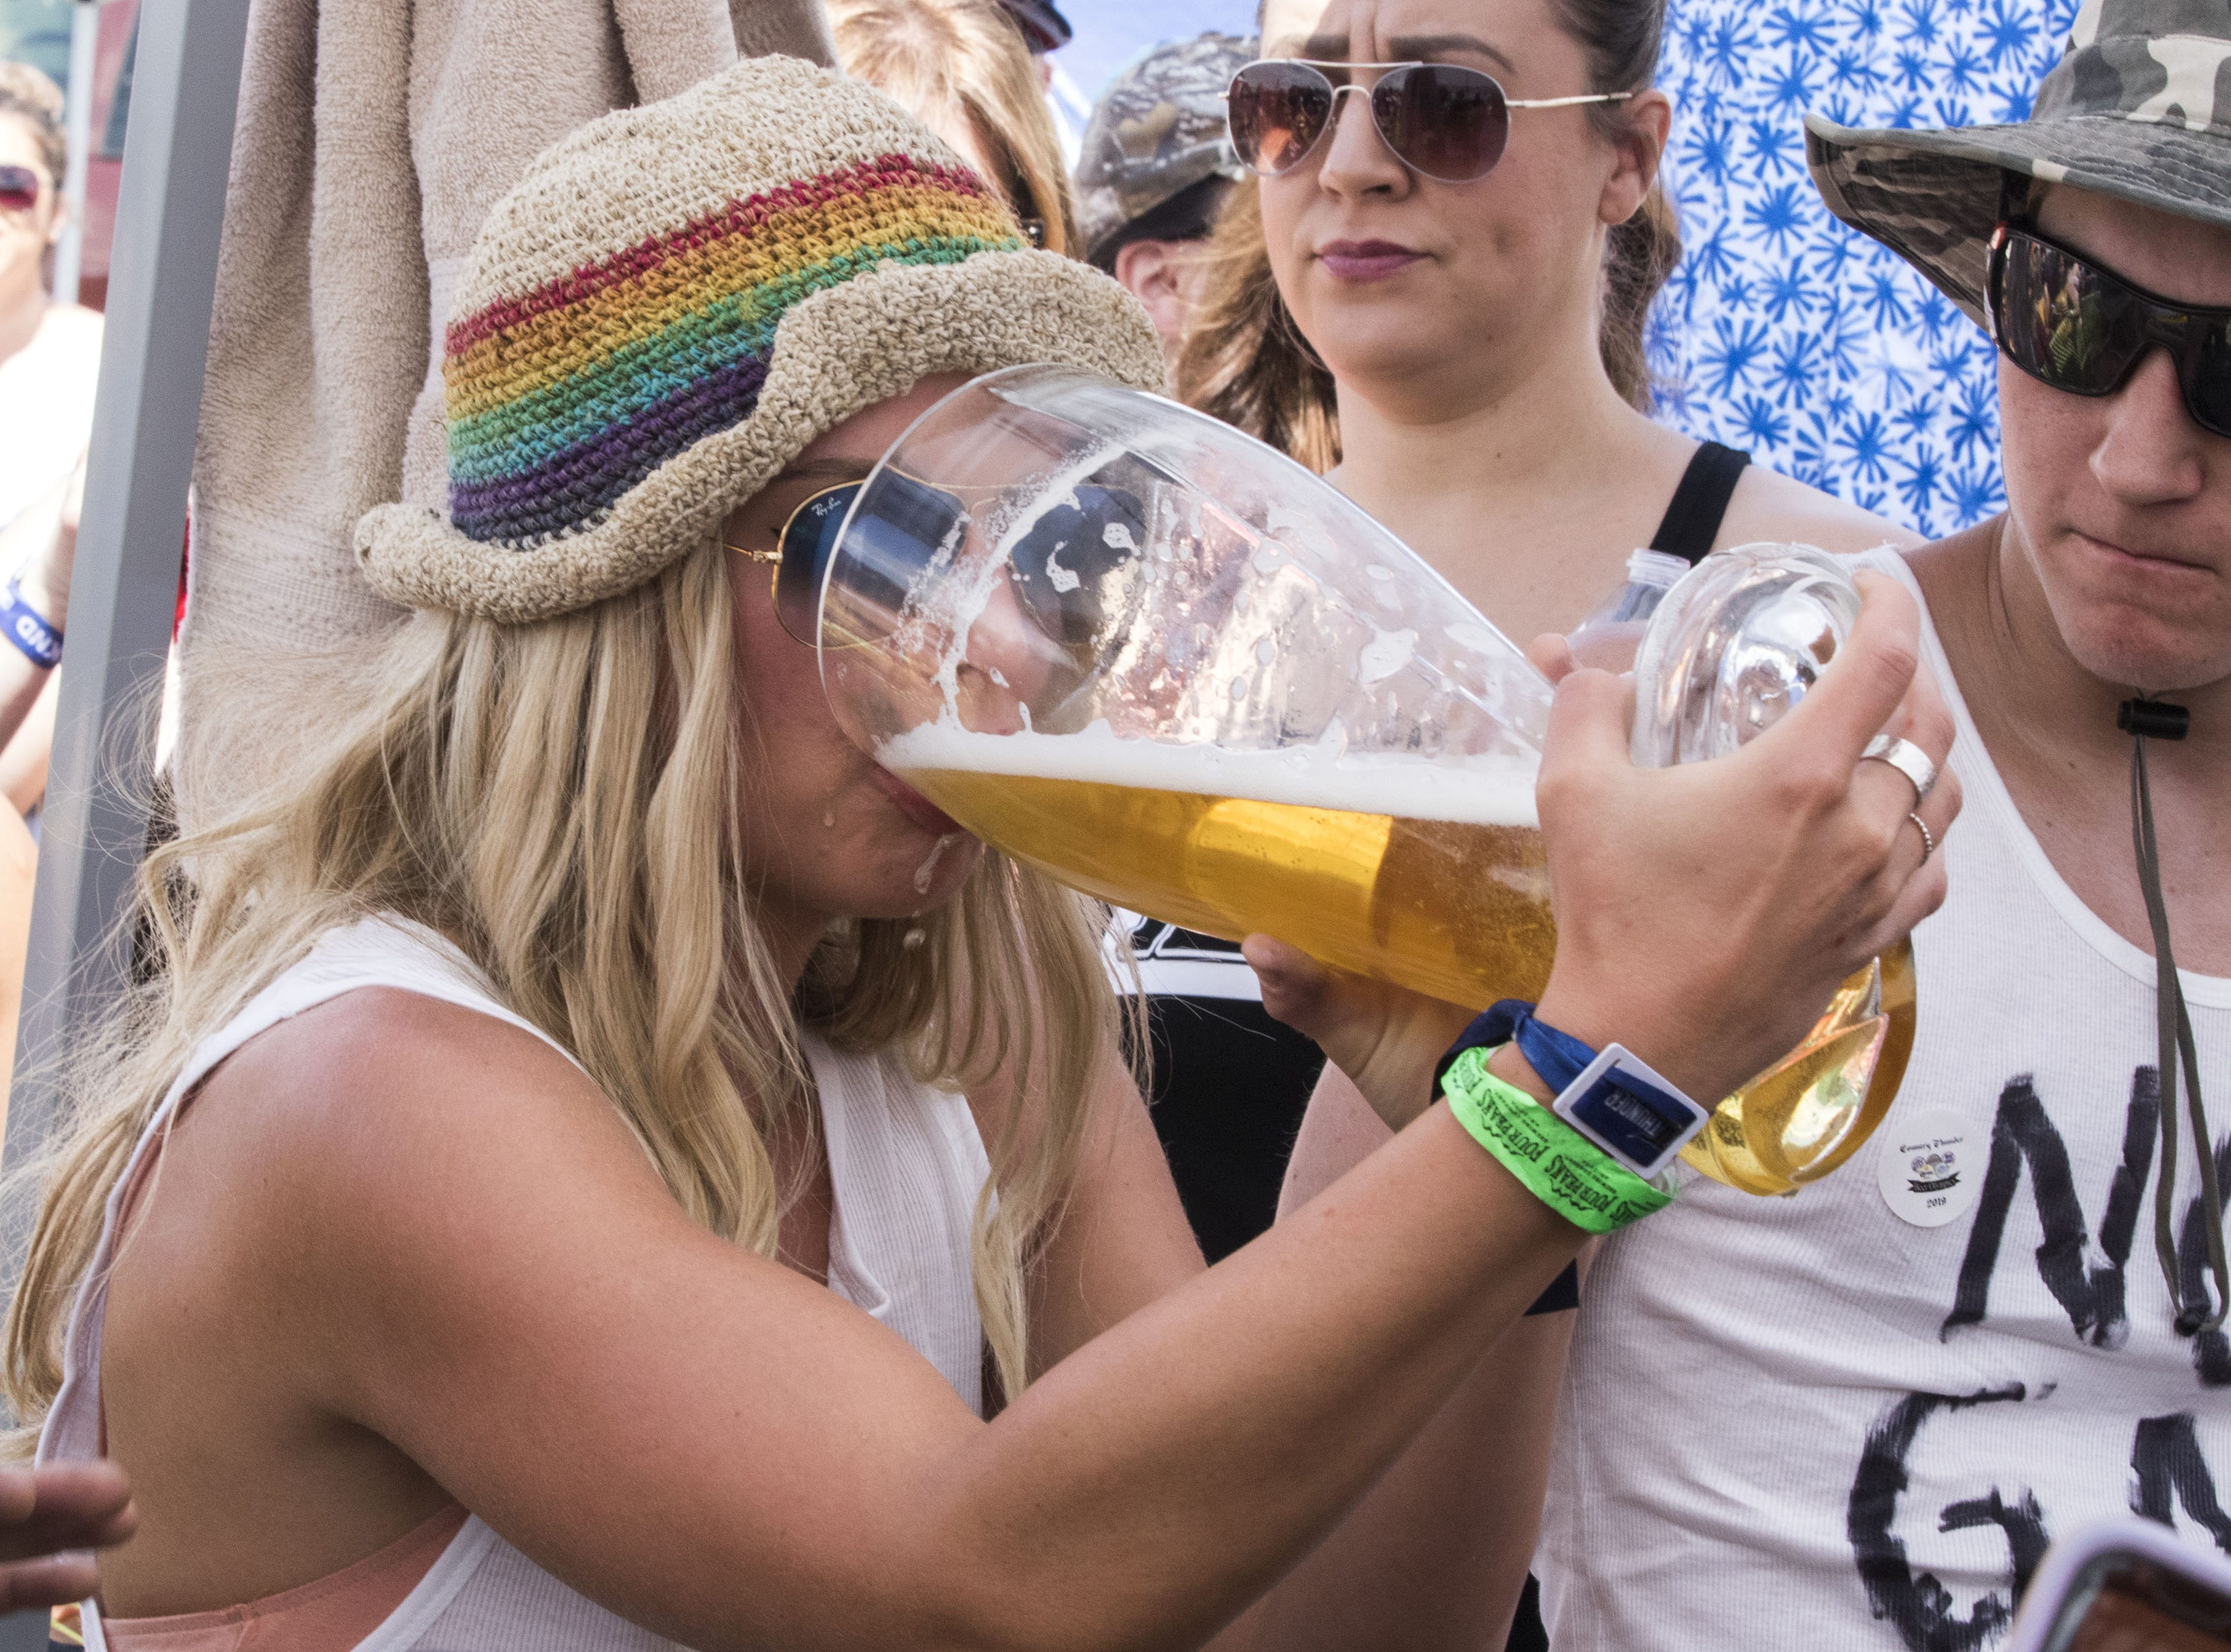 A Beer Olympian does her best at chugging her beer during the beer chugging game at Country Thunder Arizona Friday, April 12, 2019, in Florence, Arizona.